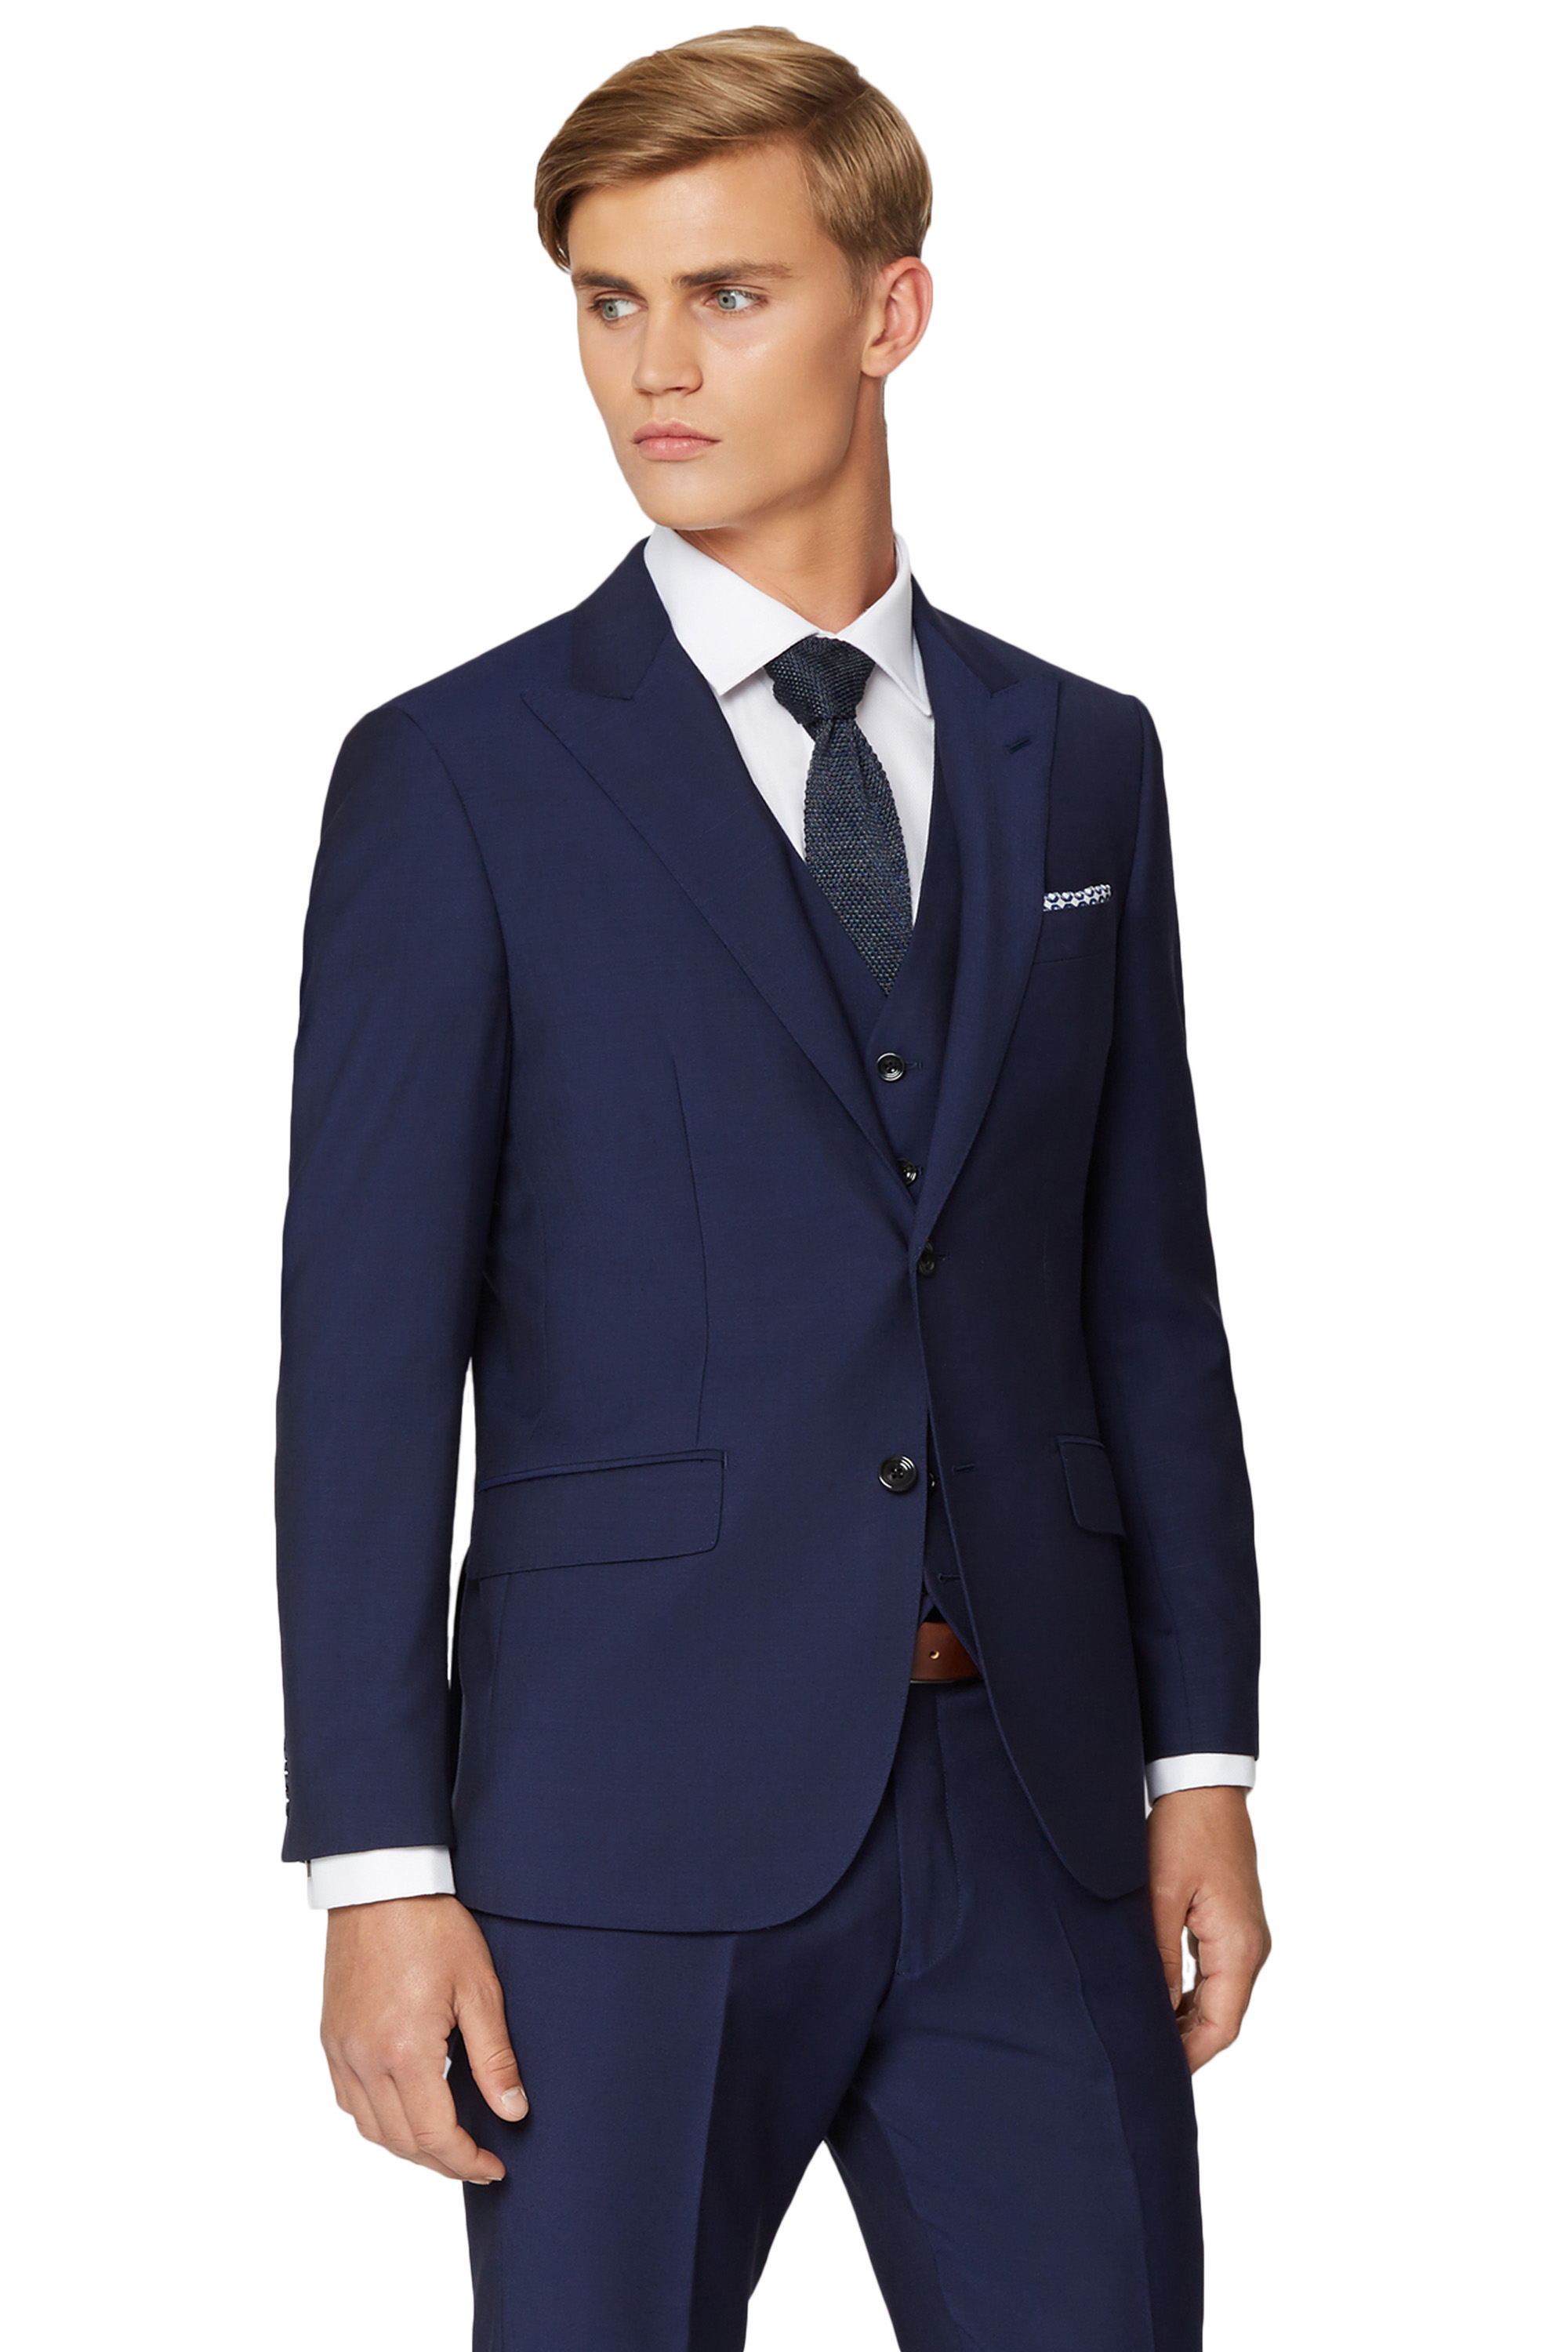 Moss Bros Google+ Youtube Twitter Facebook Instagram Pinterest Moss Bros. is the UK's no.1 formal menswear specialist. Est. Buy online and get free UK home delivery or collect in one of our stores.